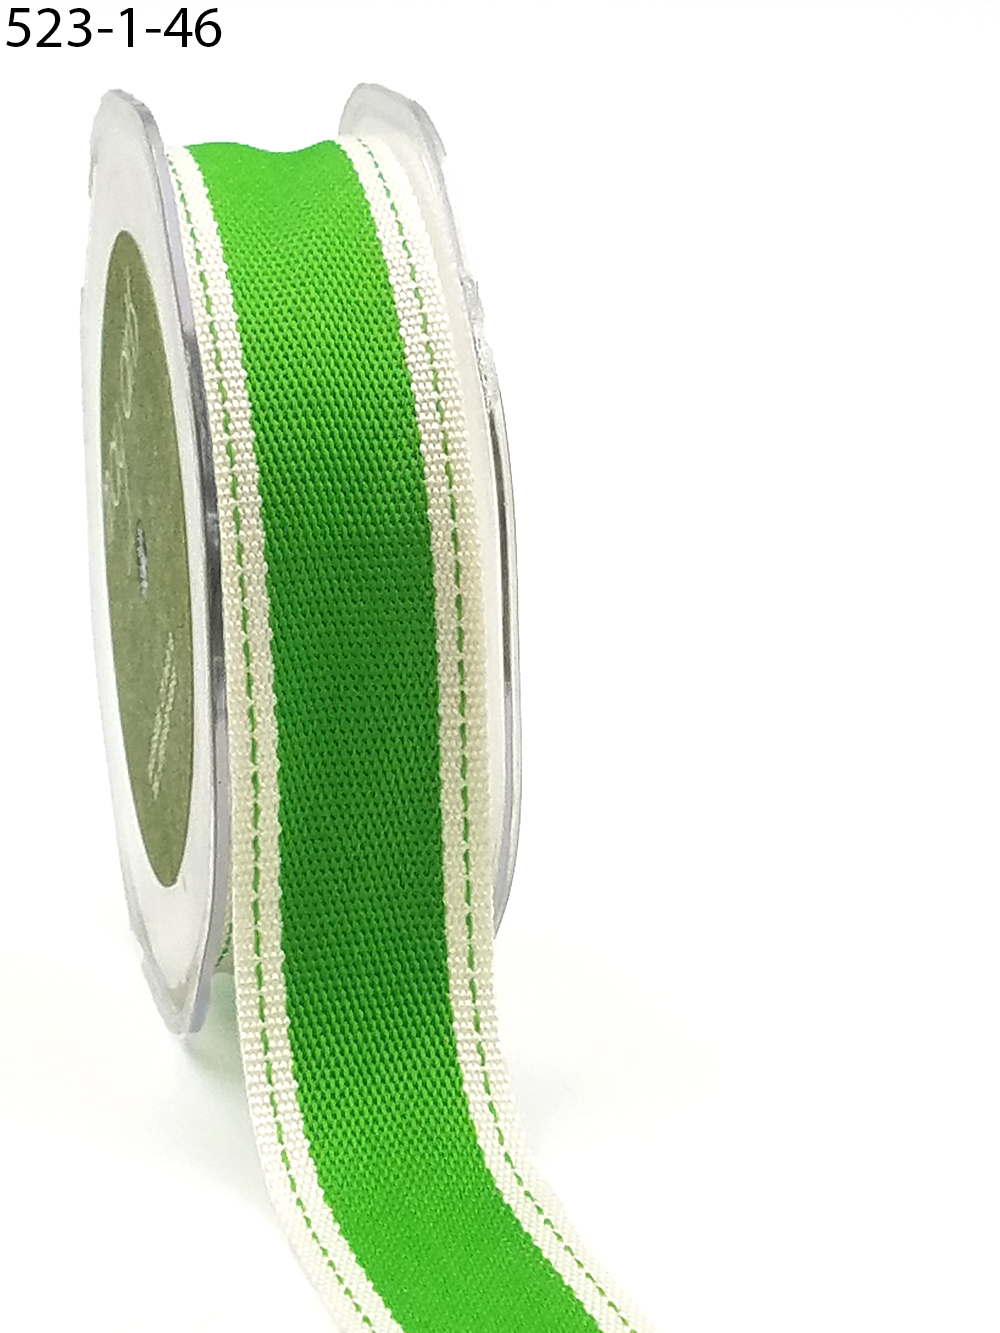 selling by yard puffed cutouts satin Jumbo Leaves Ribbon parrot green color